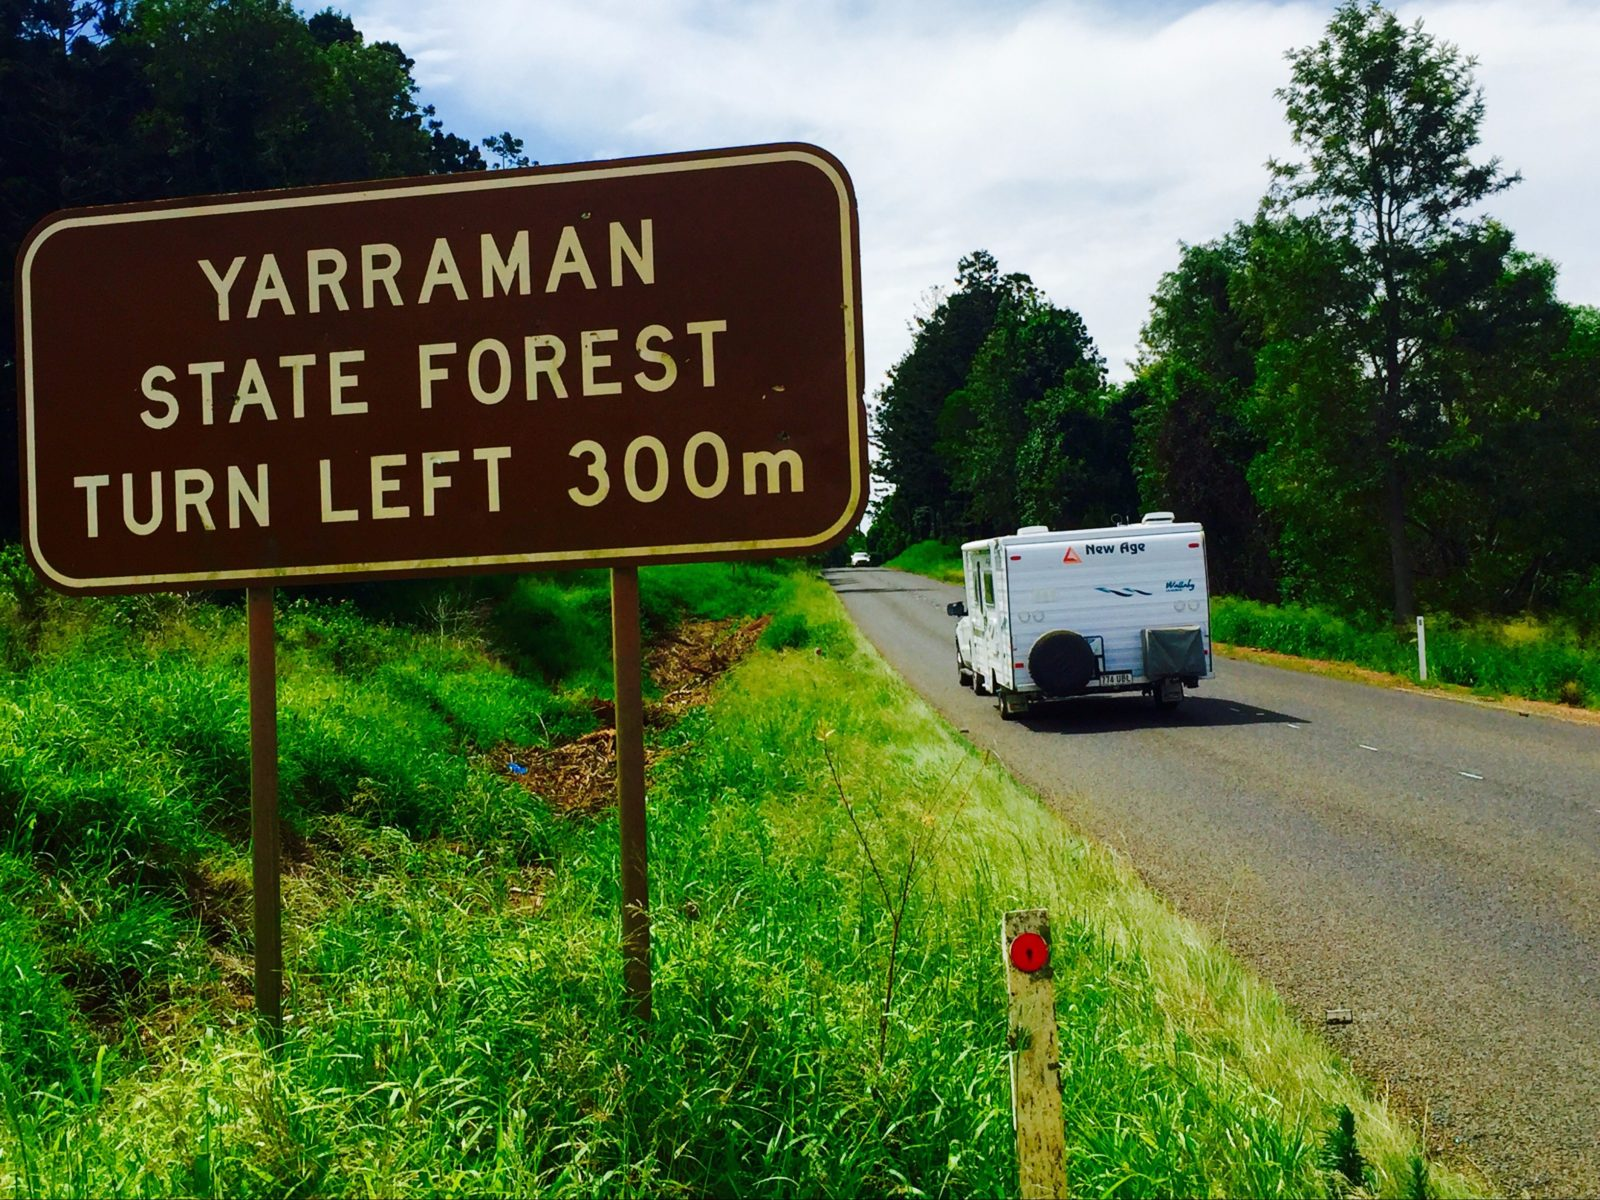 Yarraman State Forest